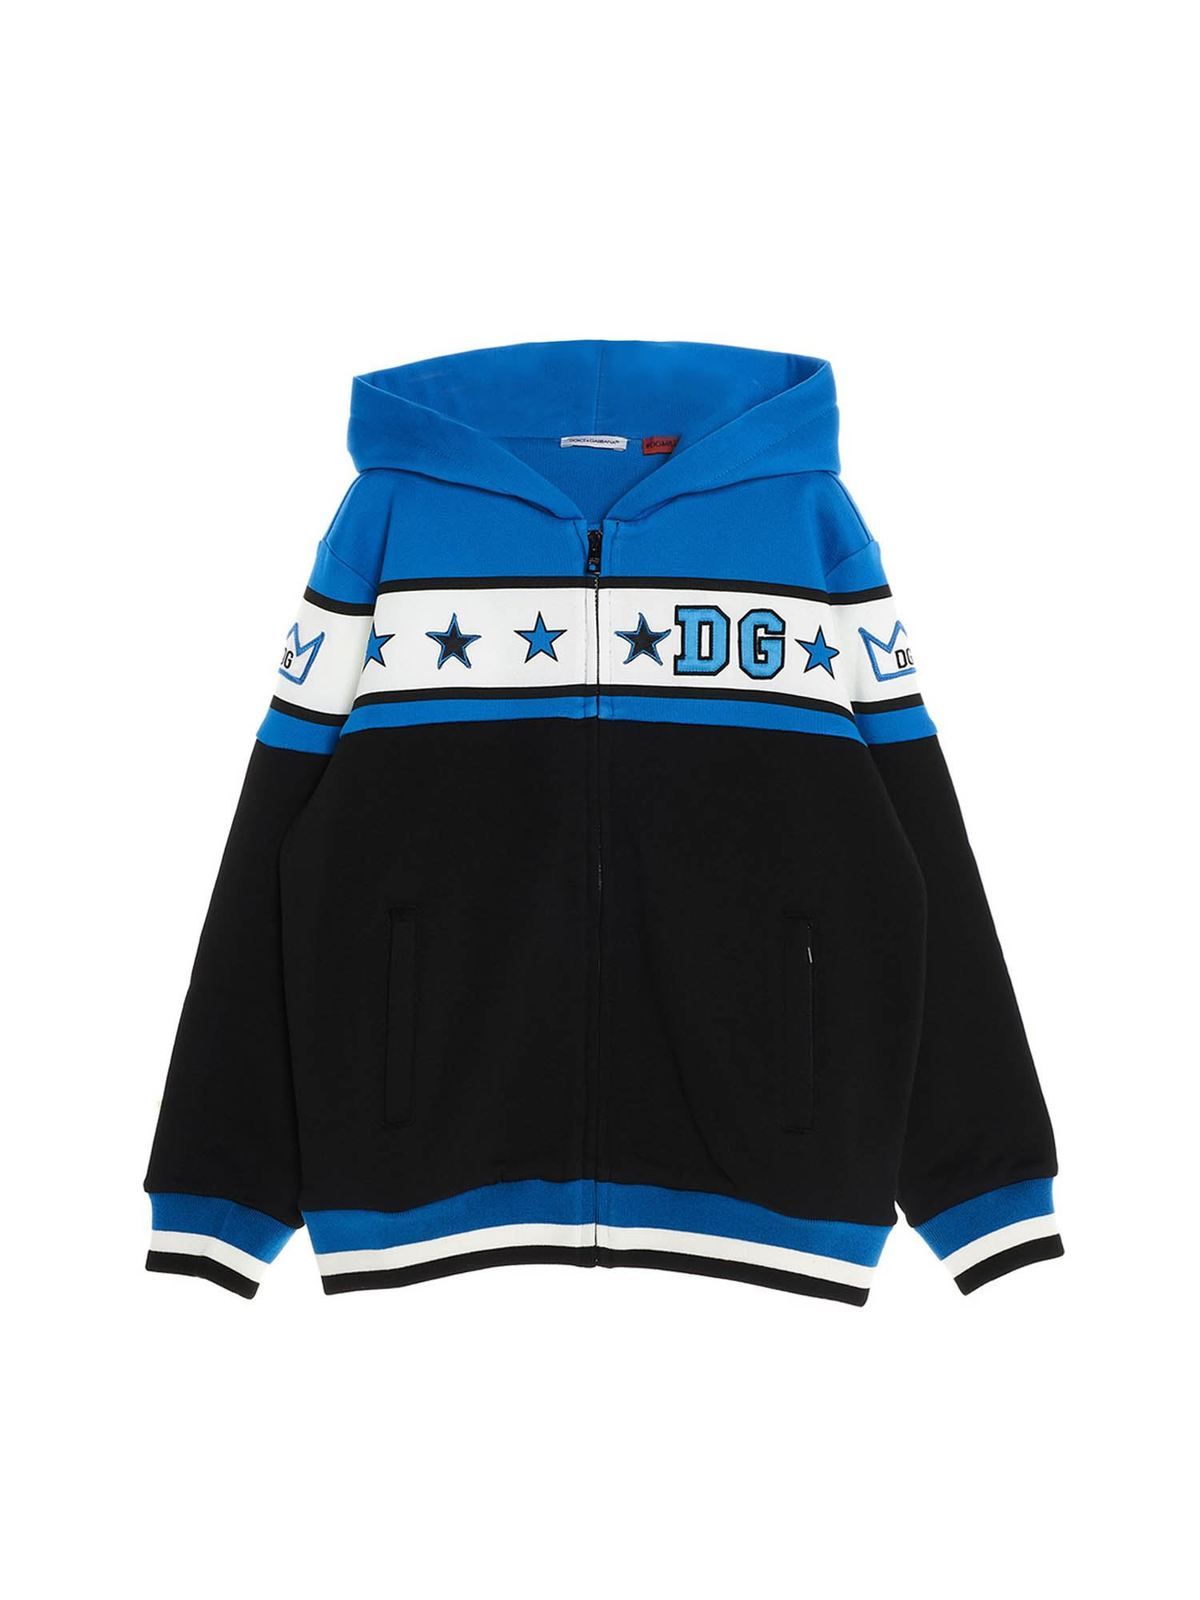 DOLCE & GABBANA JR STARS SWEATSHIRT WITH HOOD AND ZIP IN BLUE